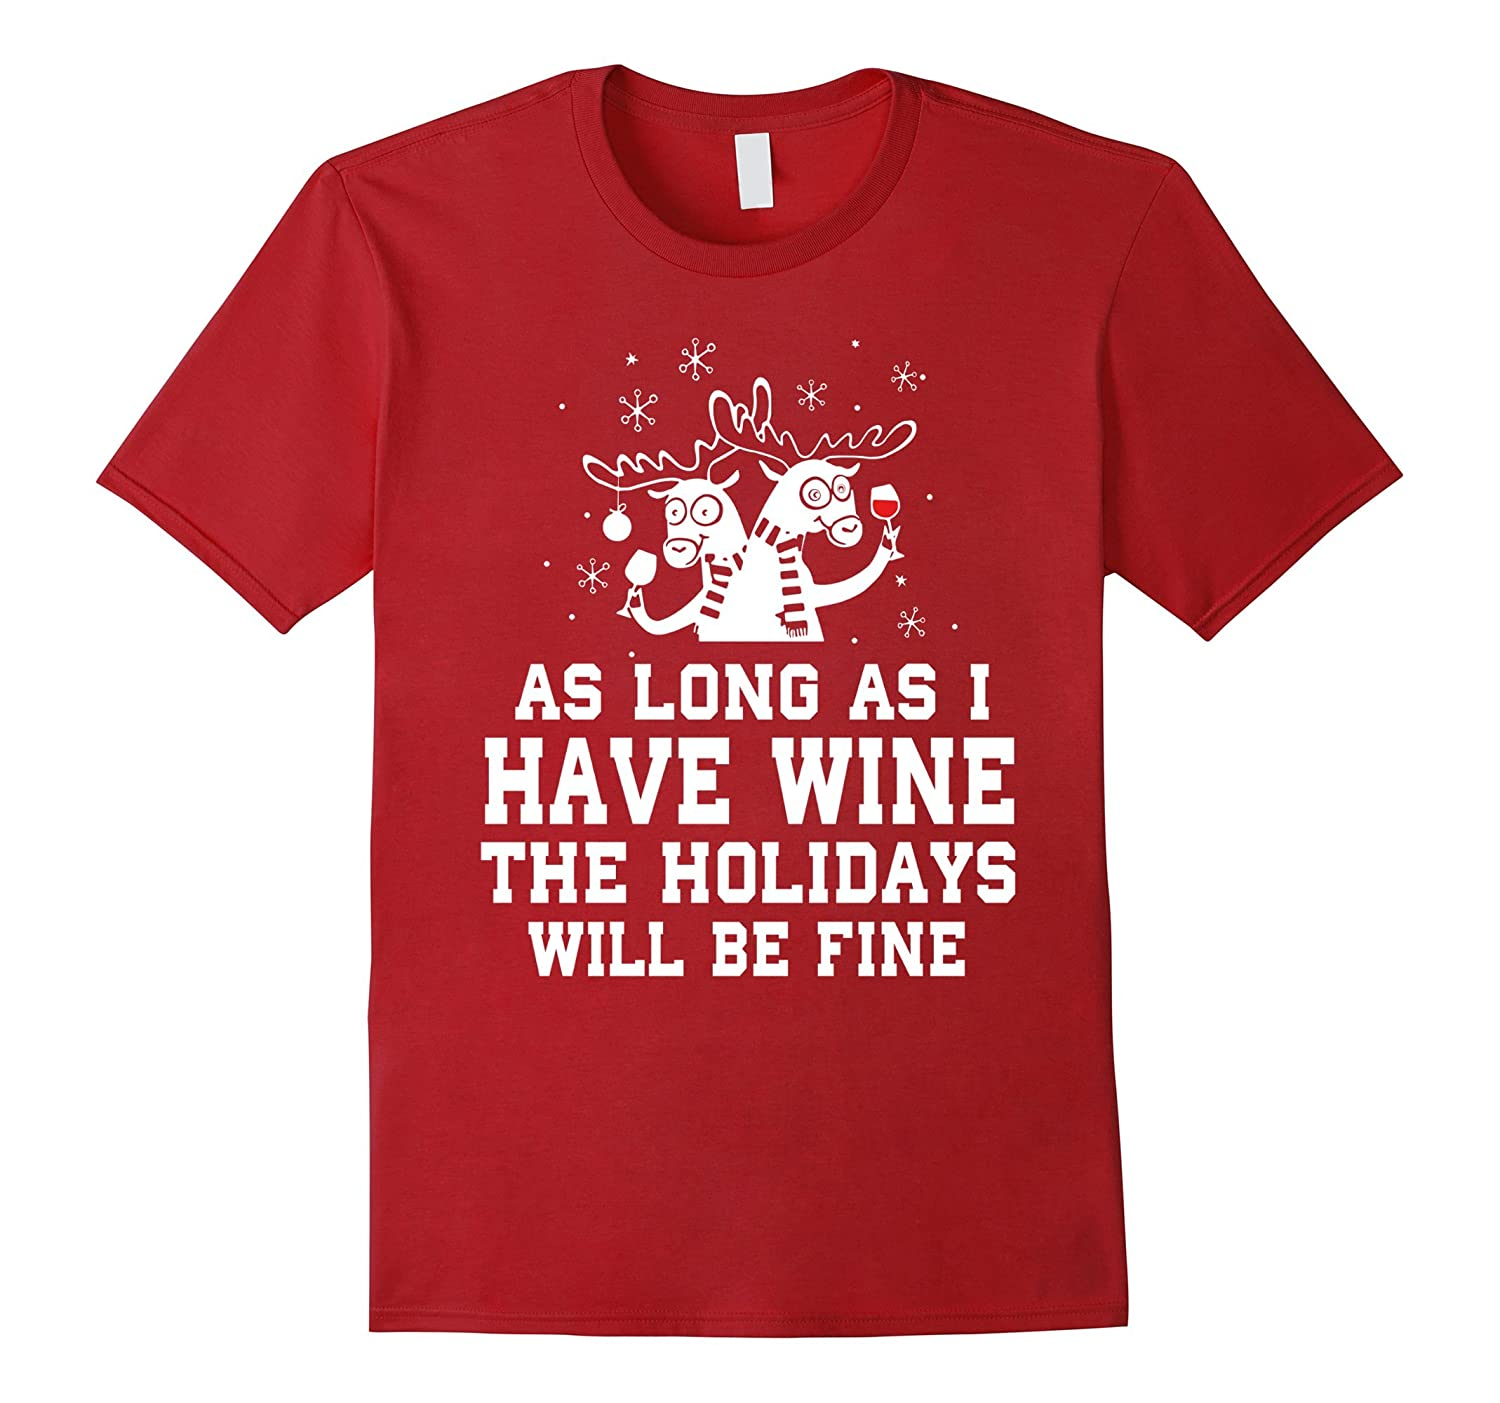 As long As I have Wine The Holidays Will Be Fine Shirt